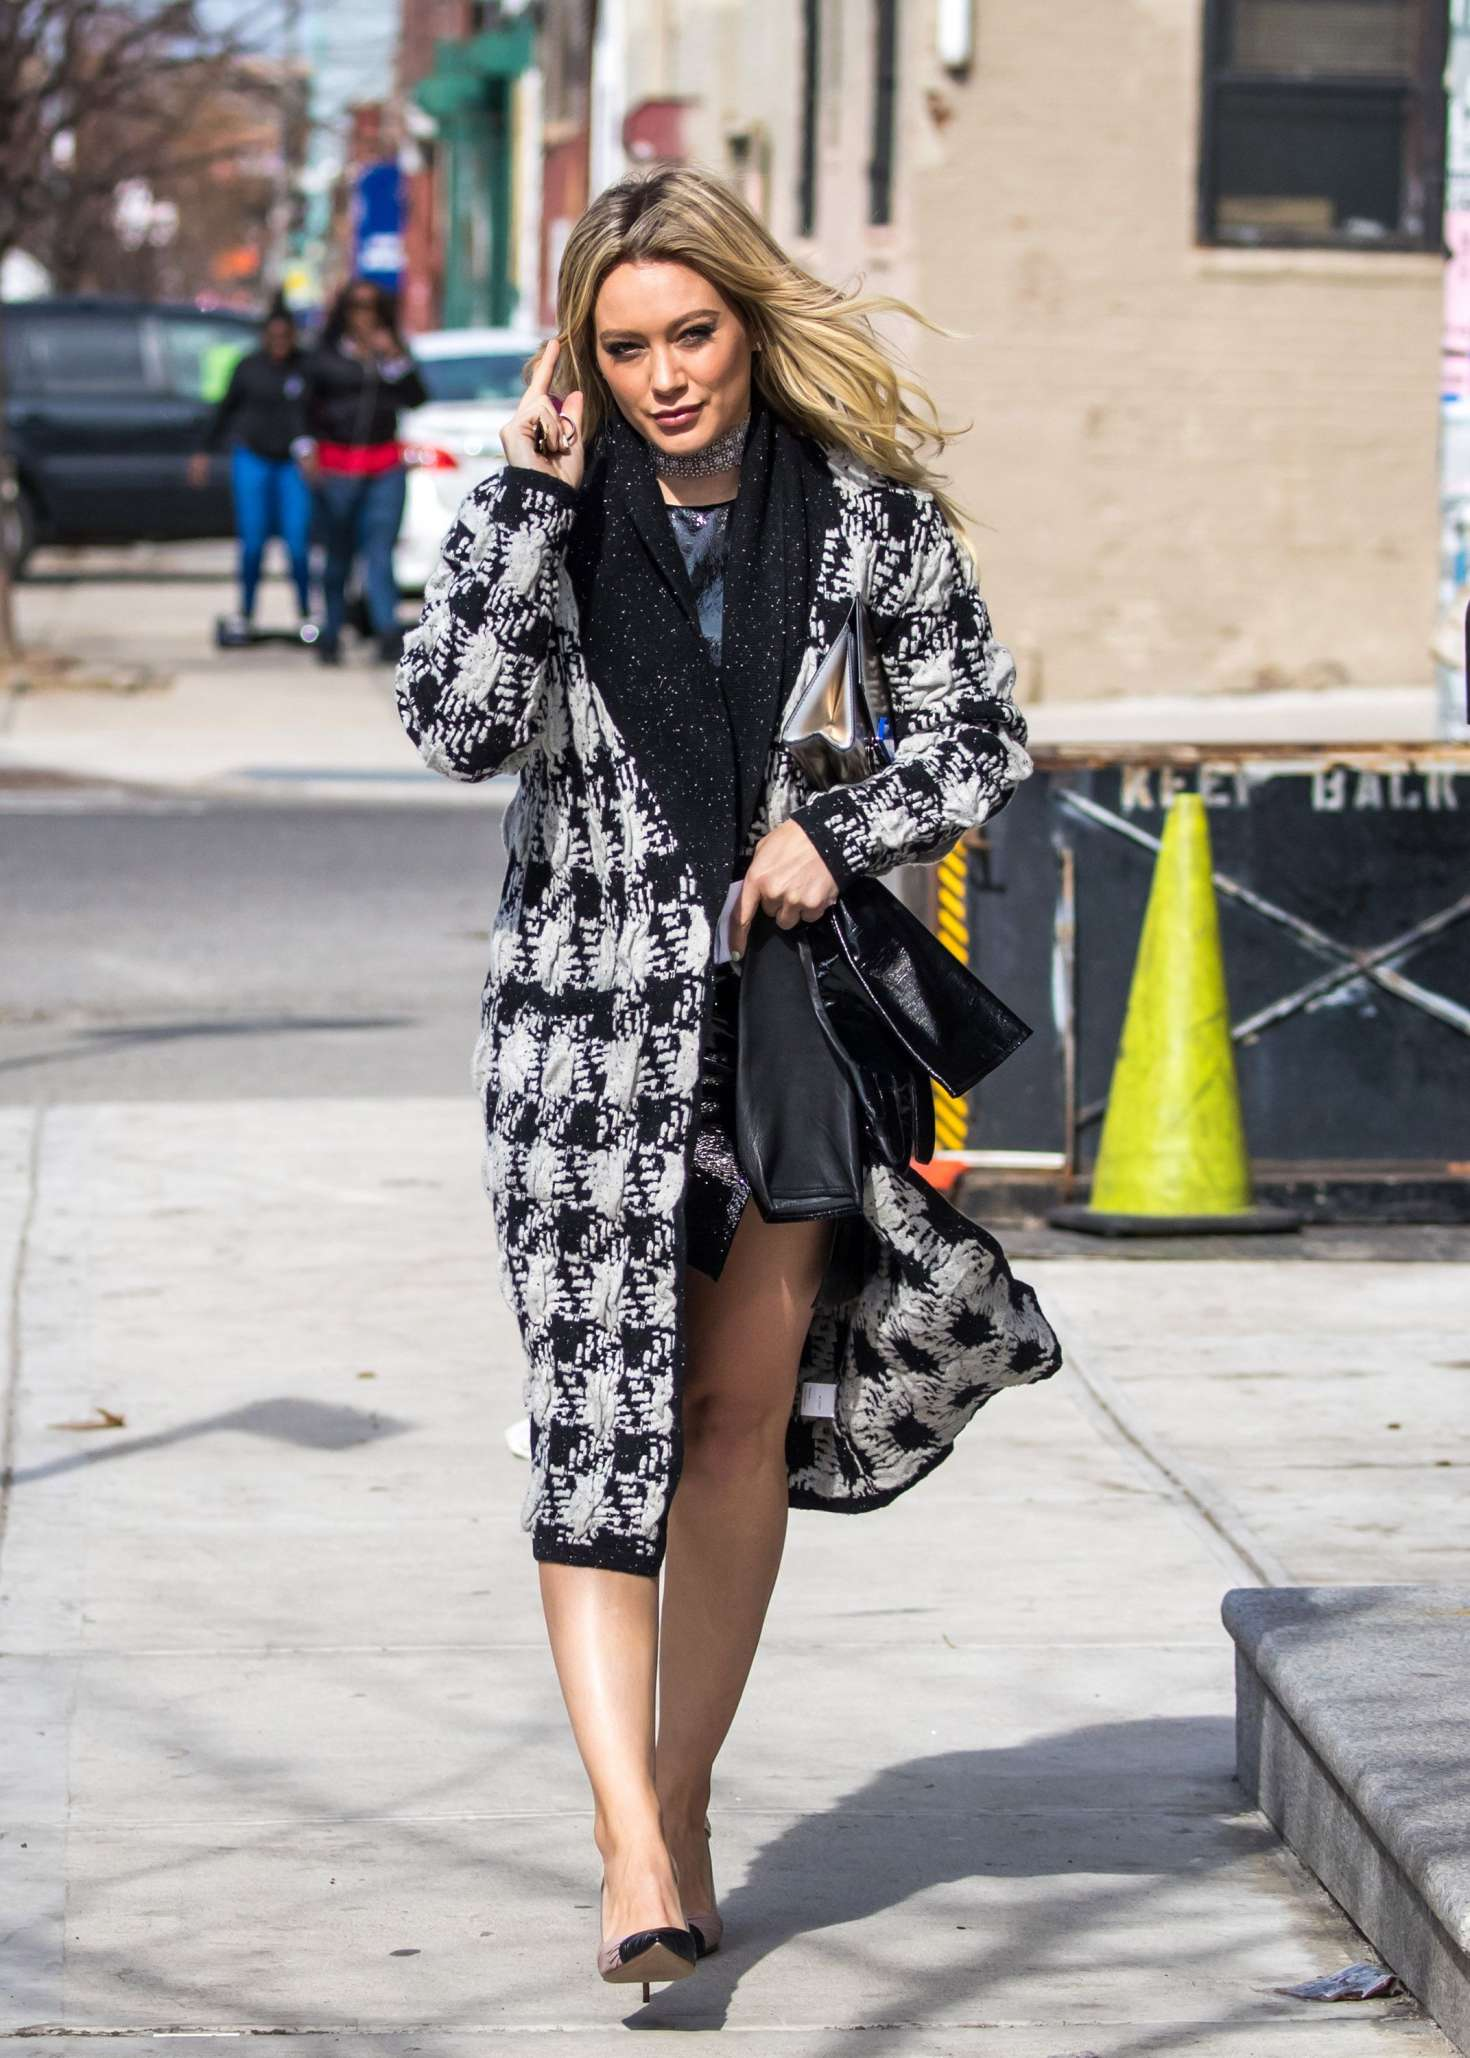 Hilary Duff 2015 : Hilary Duff on the set of Younger -03